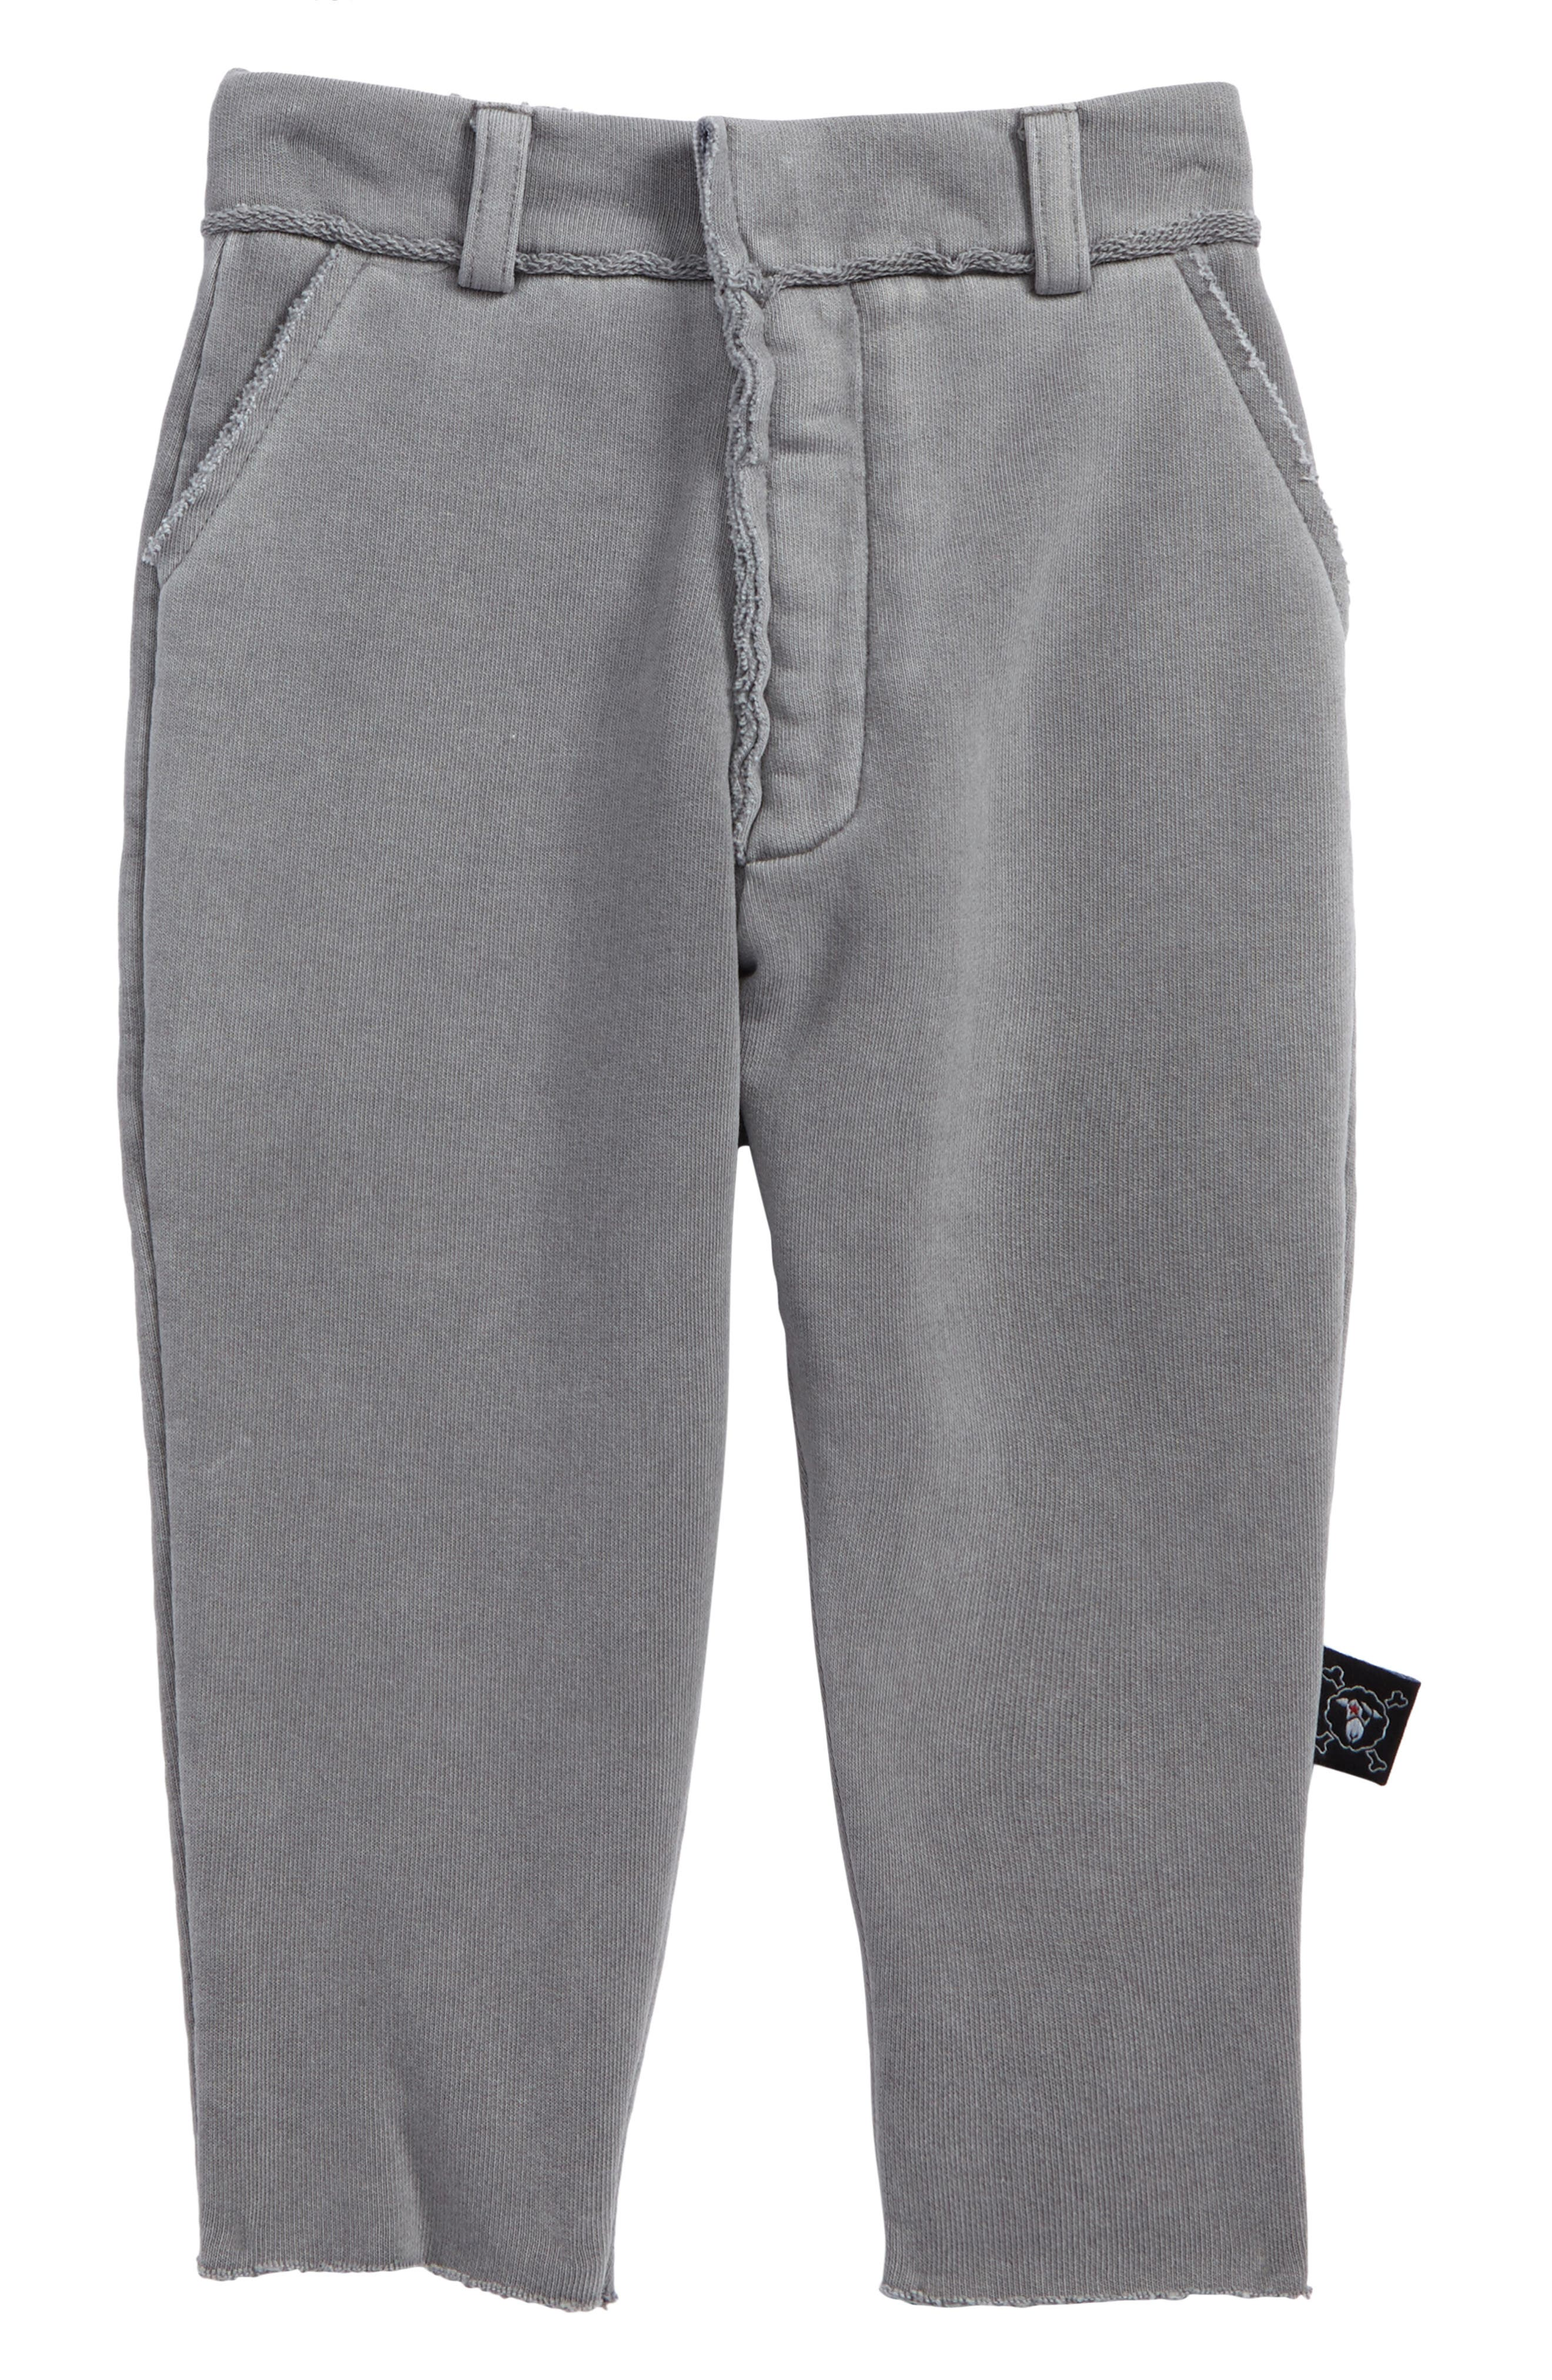 French Terry Pants,                             Main thumbnail 1, color,                             Dyed Grey